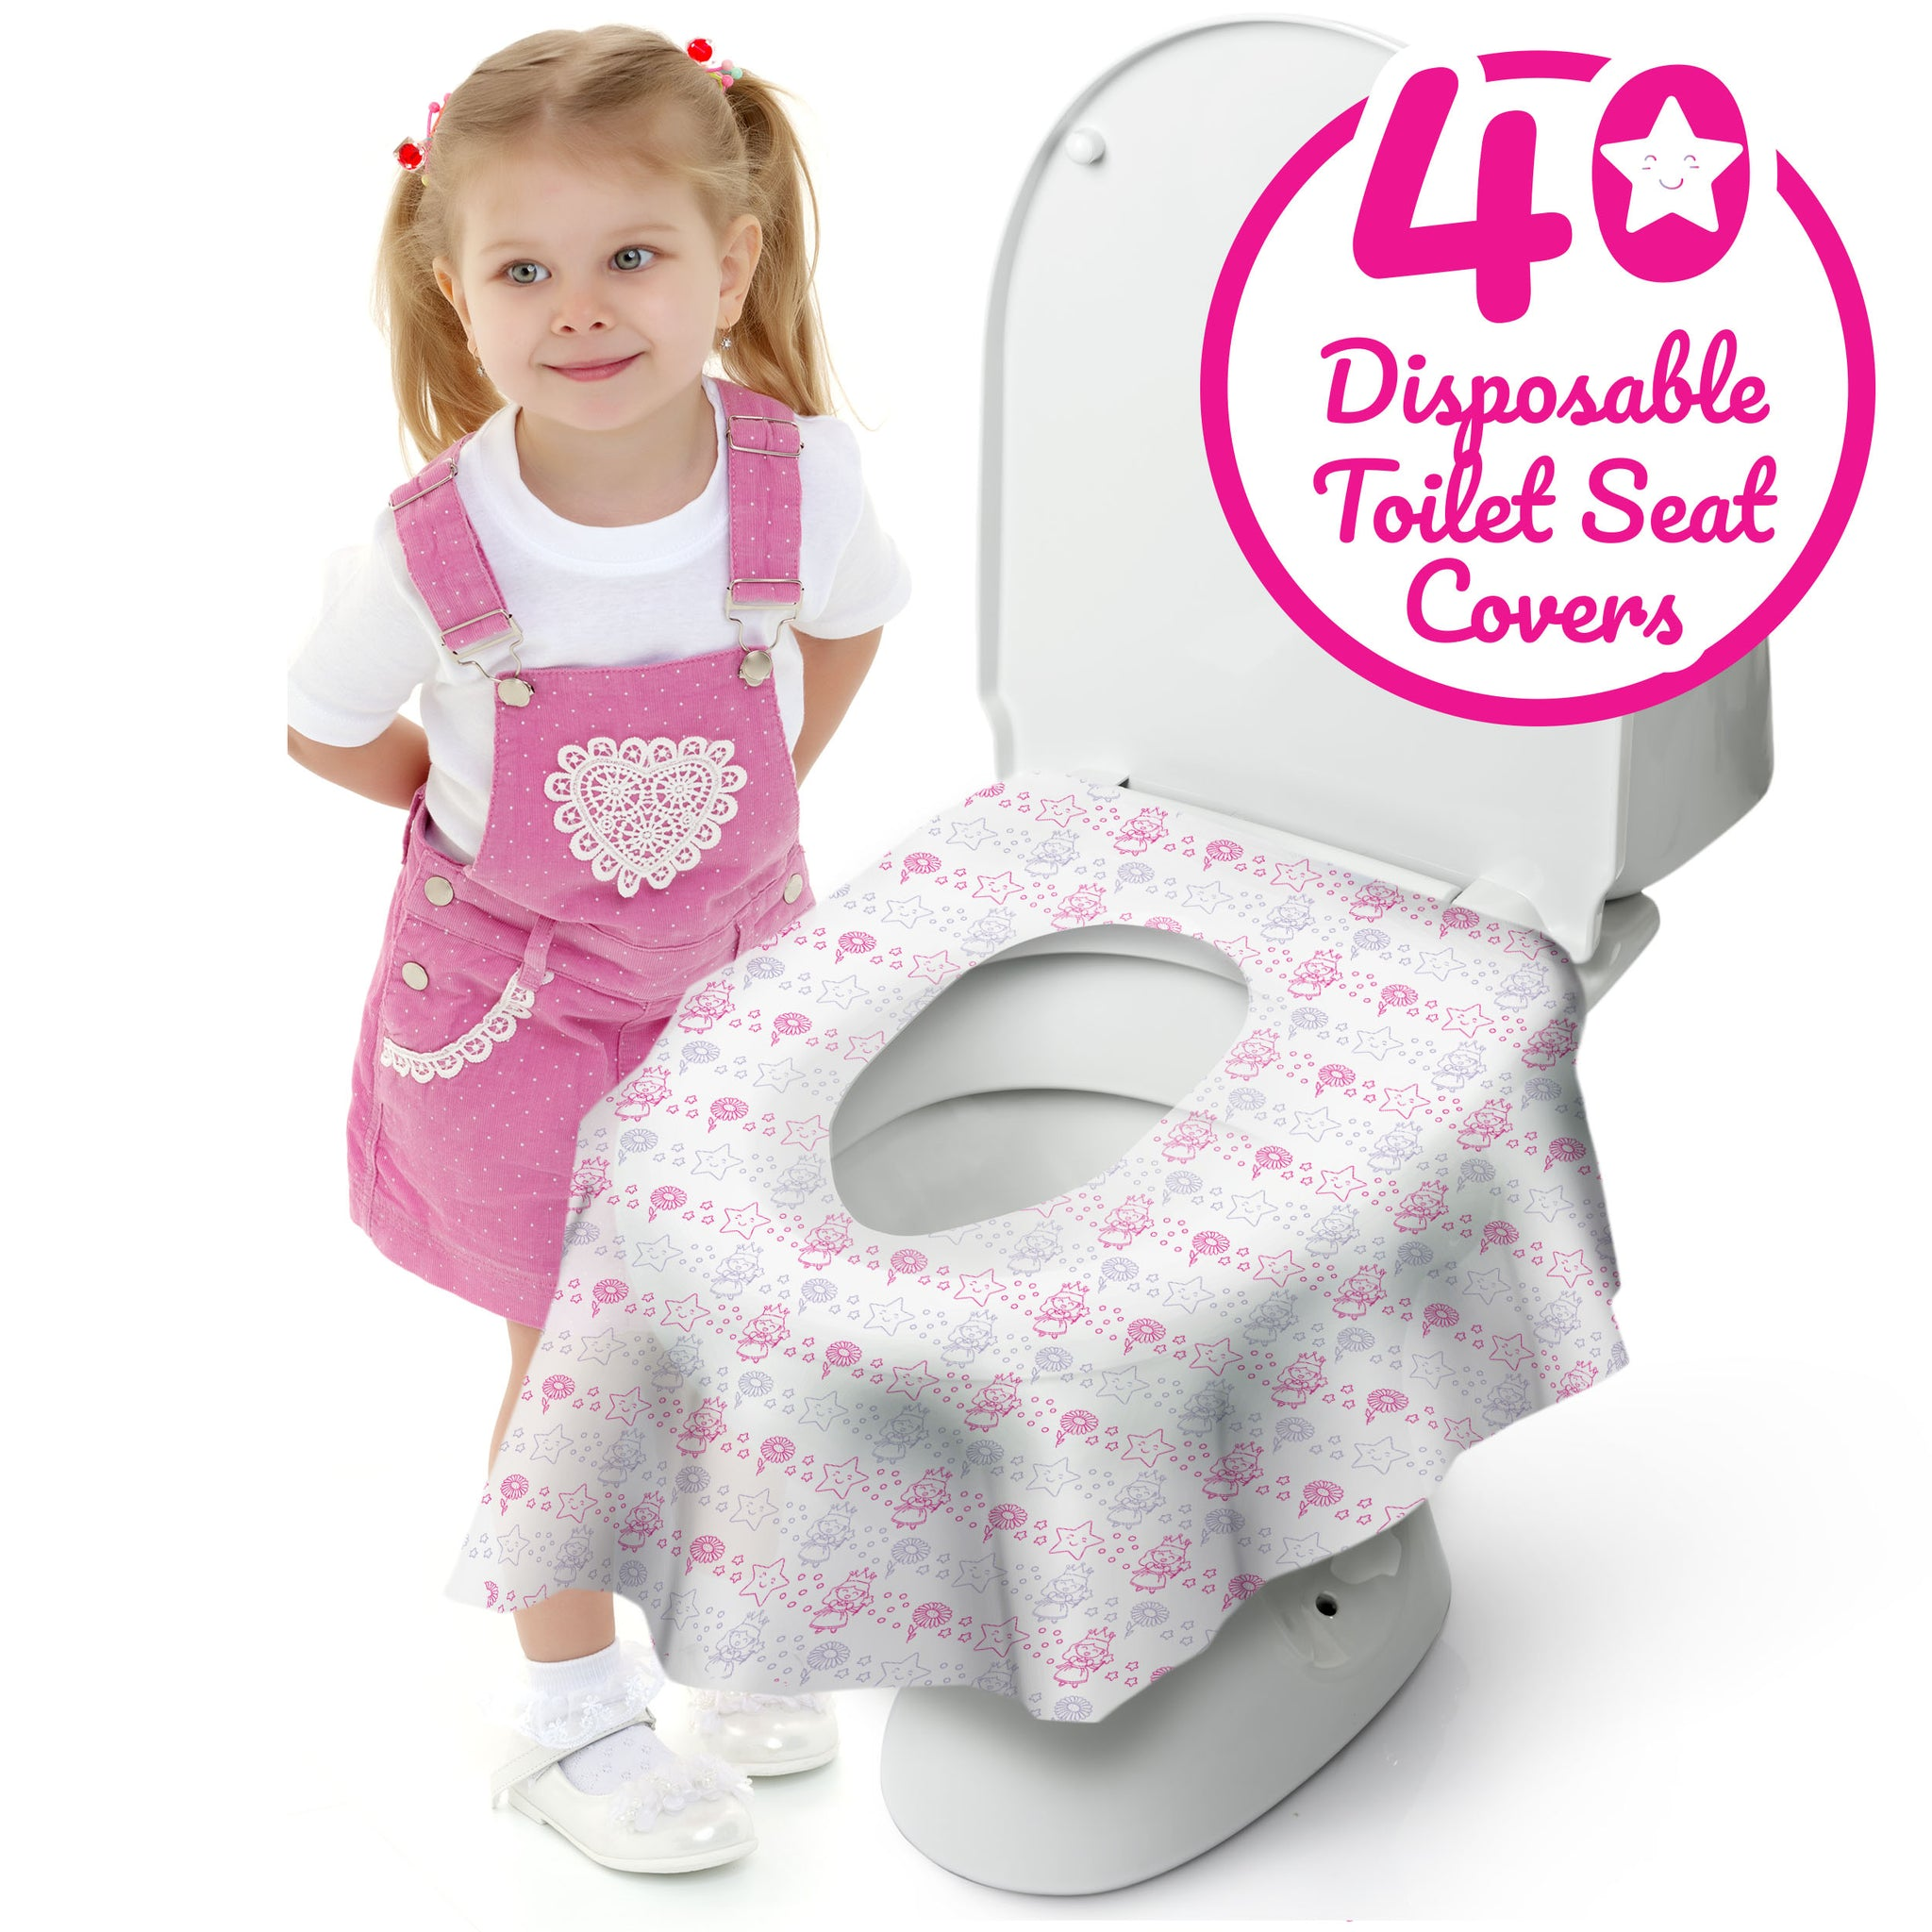 Paper Potty Seat Covers Individually Wrapped Waterproof Non Slip Circle Pattern for Adults Kids Toddlers Travel Toilet Seat Covers Disposable 20Pack